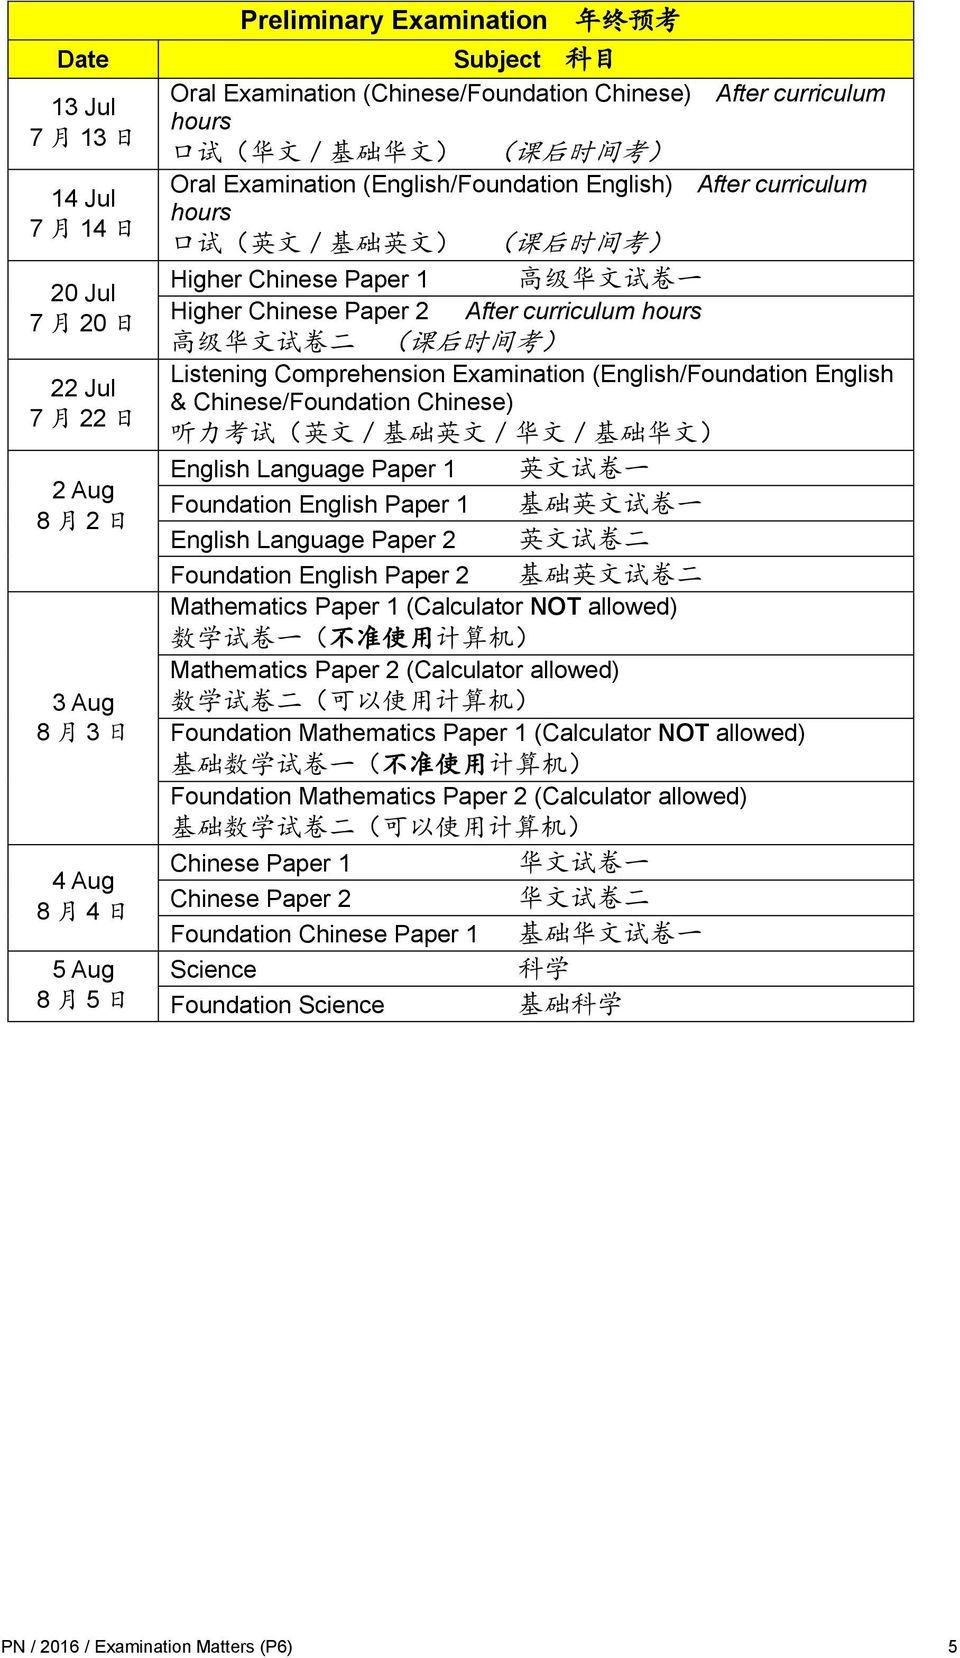 Chinese Paper 1 高 级 华 文 试 卷 一 Higher Chinese Paper 2 After curriculum hours 高 级 华 文 试 卷 二 ( 课 后 时 间 考 ) Listening Comprehension Examination (English/Foundation English & Chinese/Foundation Chinese) 听